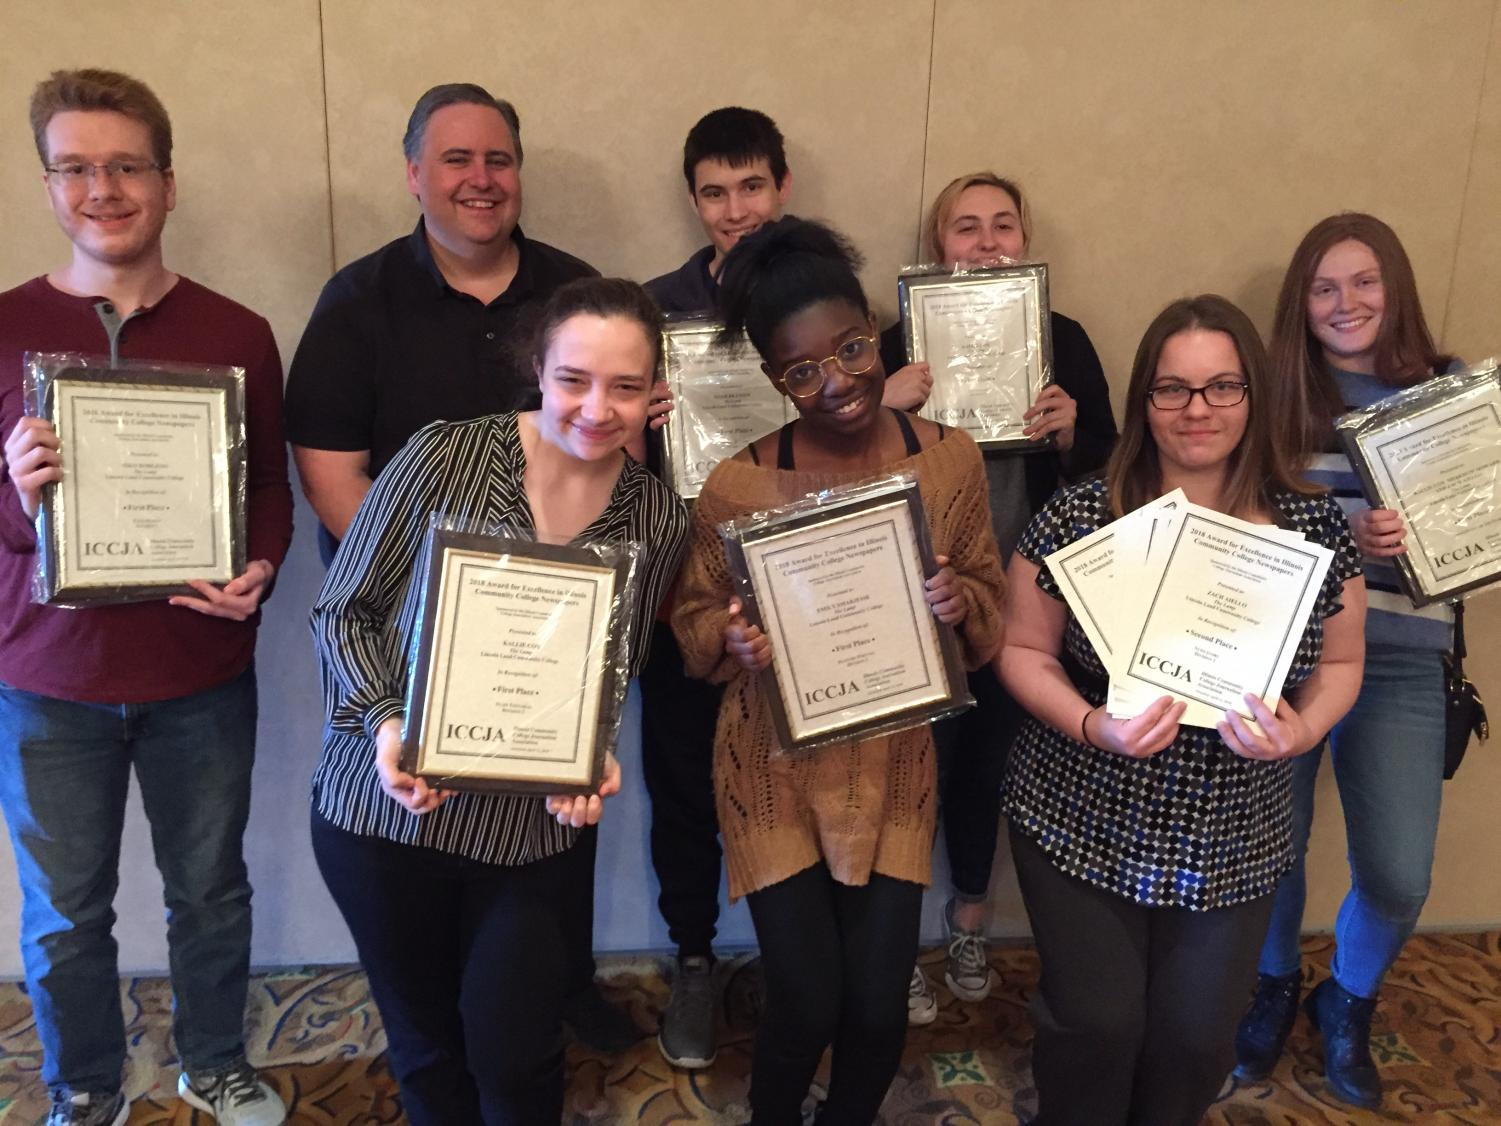 Lamp staff hold up the 19 awards that the staff won at the Illinois Community College Journalism Association's spring conference on Friday, April 12, 2019, in Utica, Illinois. In the front row are Tess Peterson; Regina Ivy, assistant editor; and Rosanna Cravens. Back row are Tyler Buske, assistant editor; Tim McKenzie, adviser, Ryan Scott; Sage Gass; and Meredith Howard, editor-in-chief.